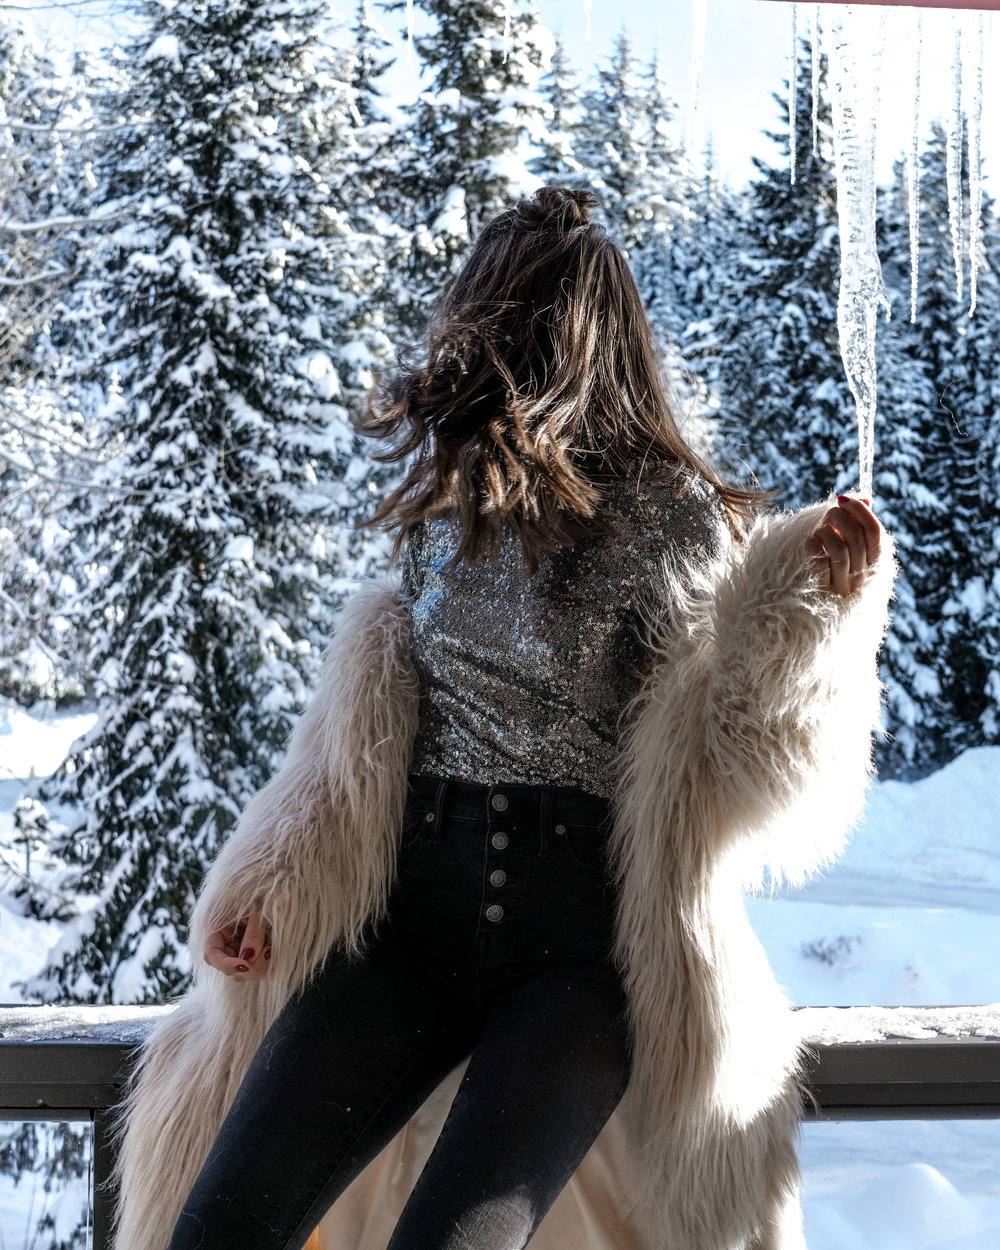 new years eve snow sequin fur outfit whistler2.jpg